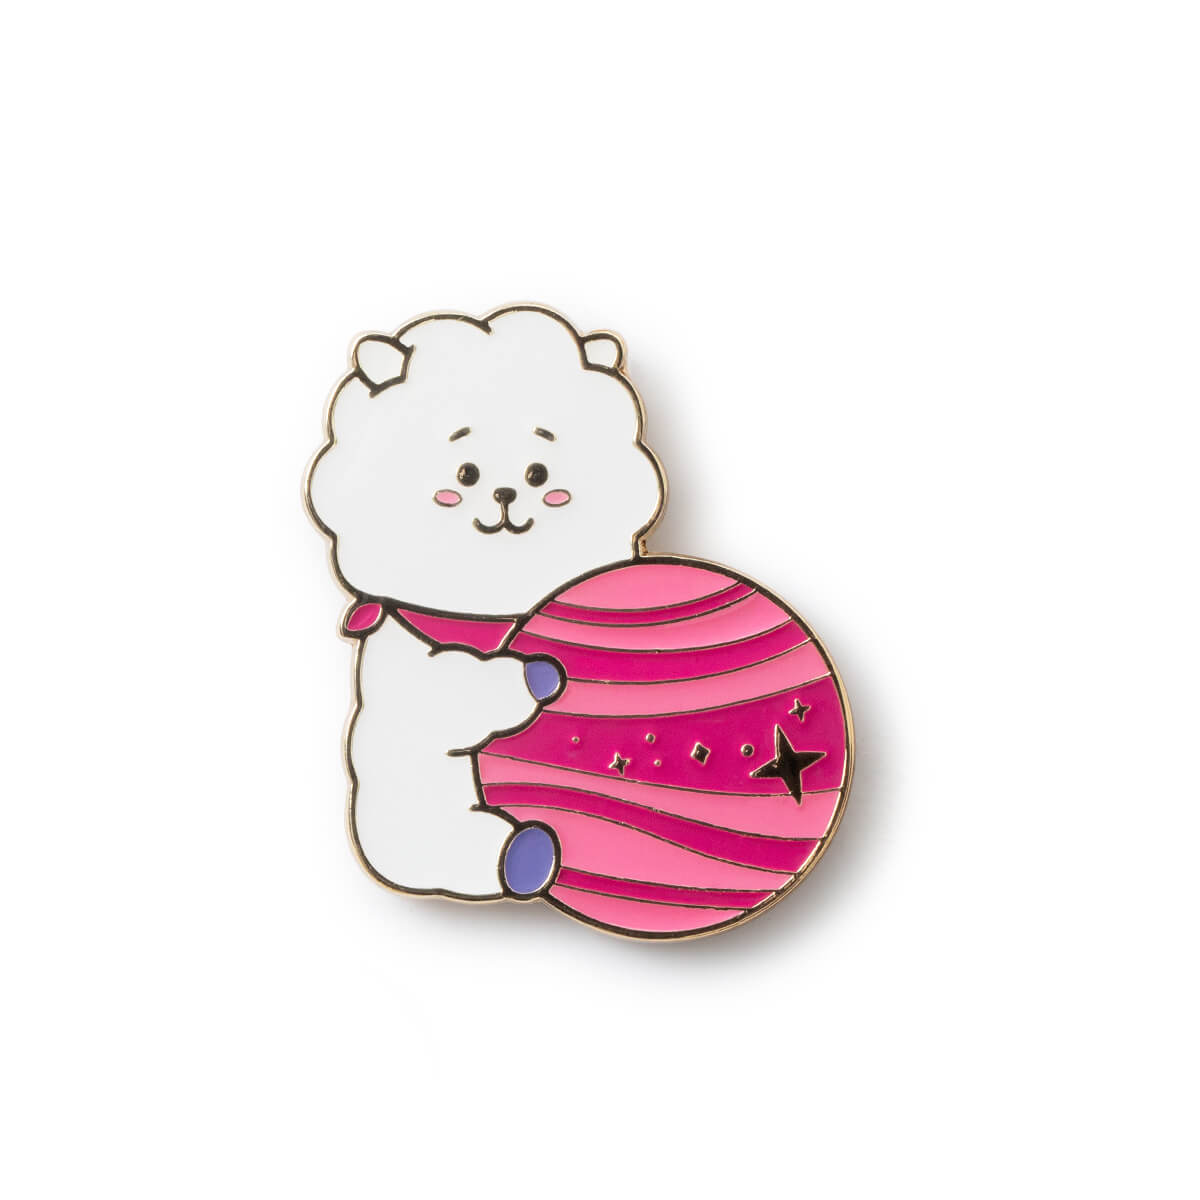 BT21 RJ 20 Space Wappen Metal Badge 2 Piece Set